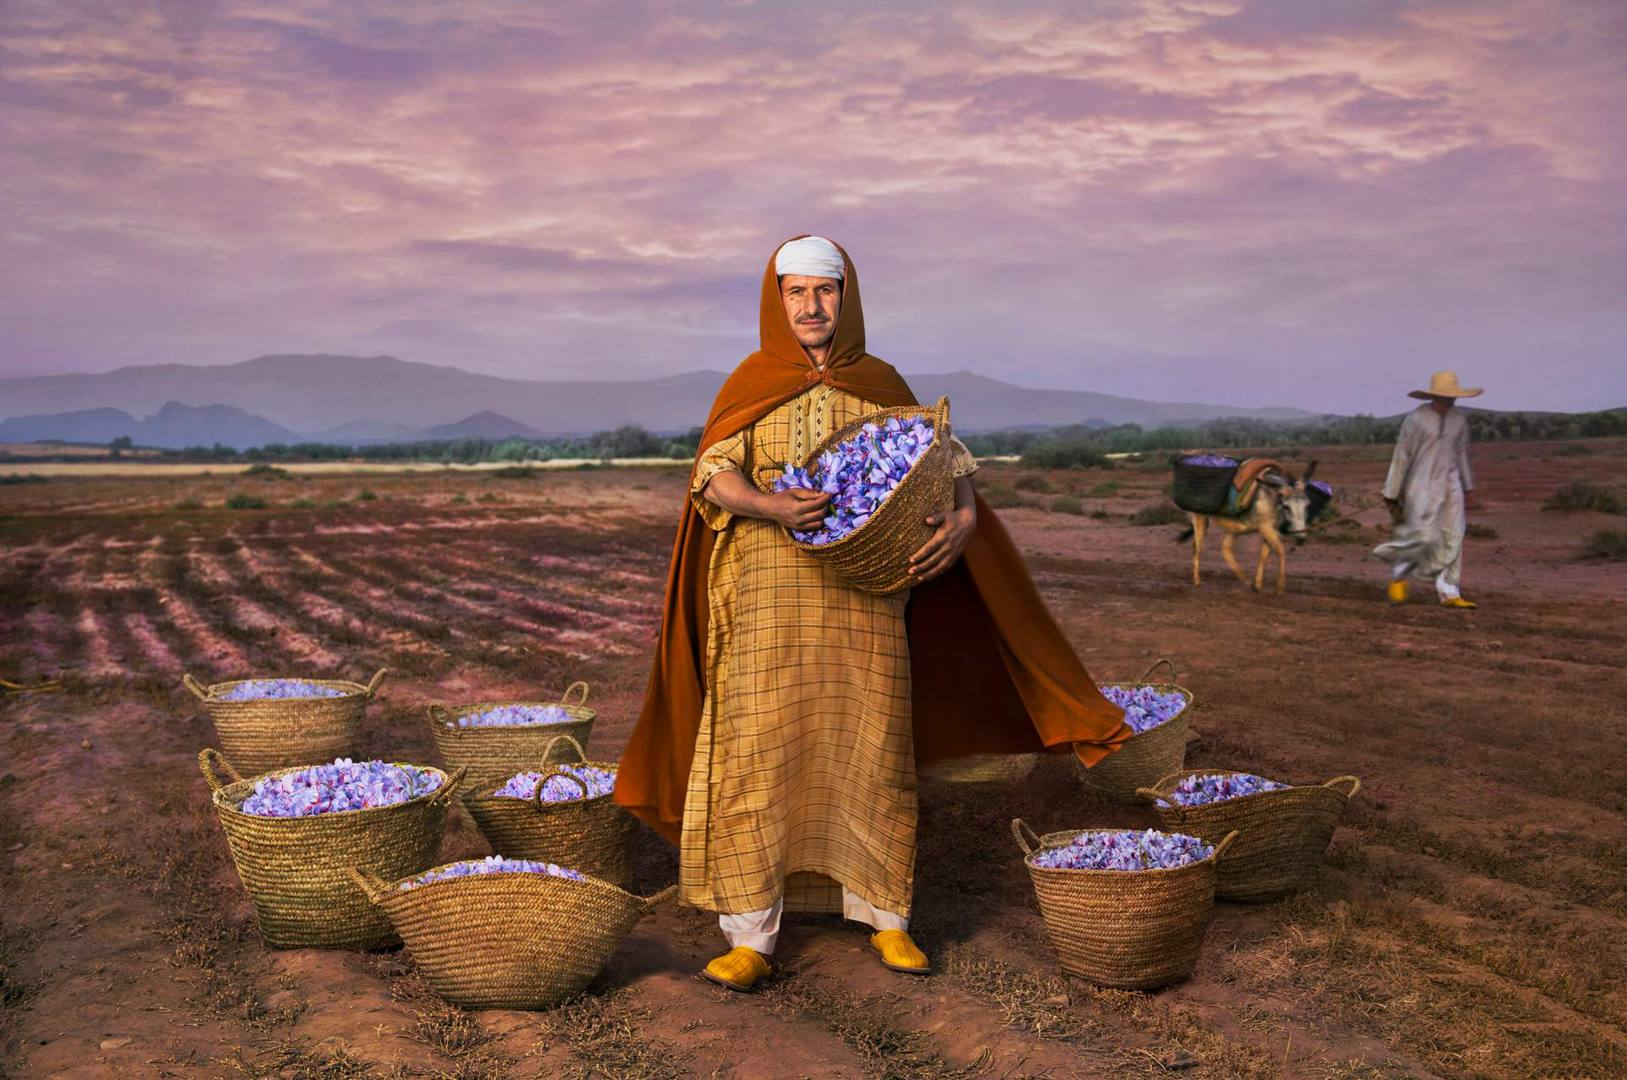 'Saffron and Freedom' - Mhamd Id Taleb, President of the saffron agricultural cooperative and Slow Food Presidium in Taliouine, a village in the south east of Morocco, the freedom of his lifestyle derives from the cultivation of saffron